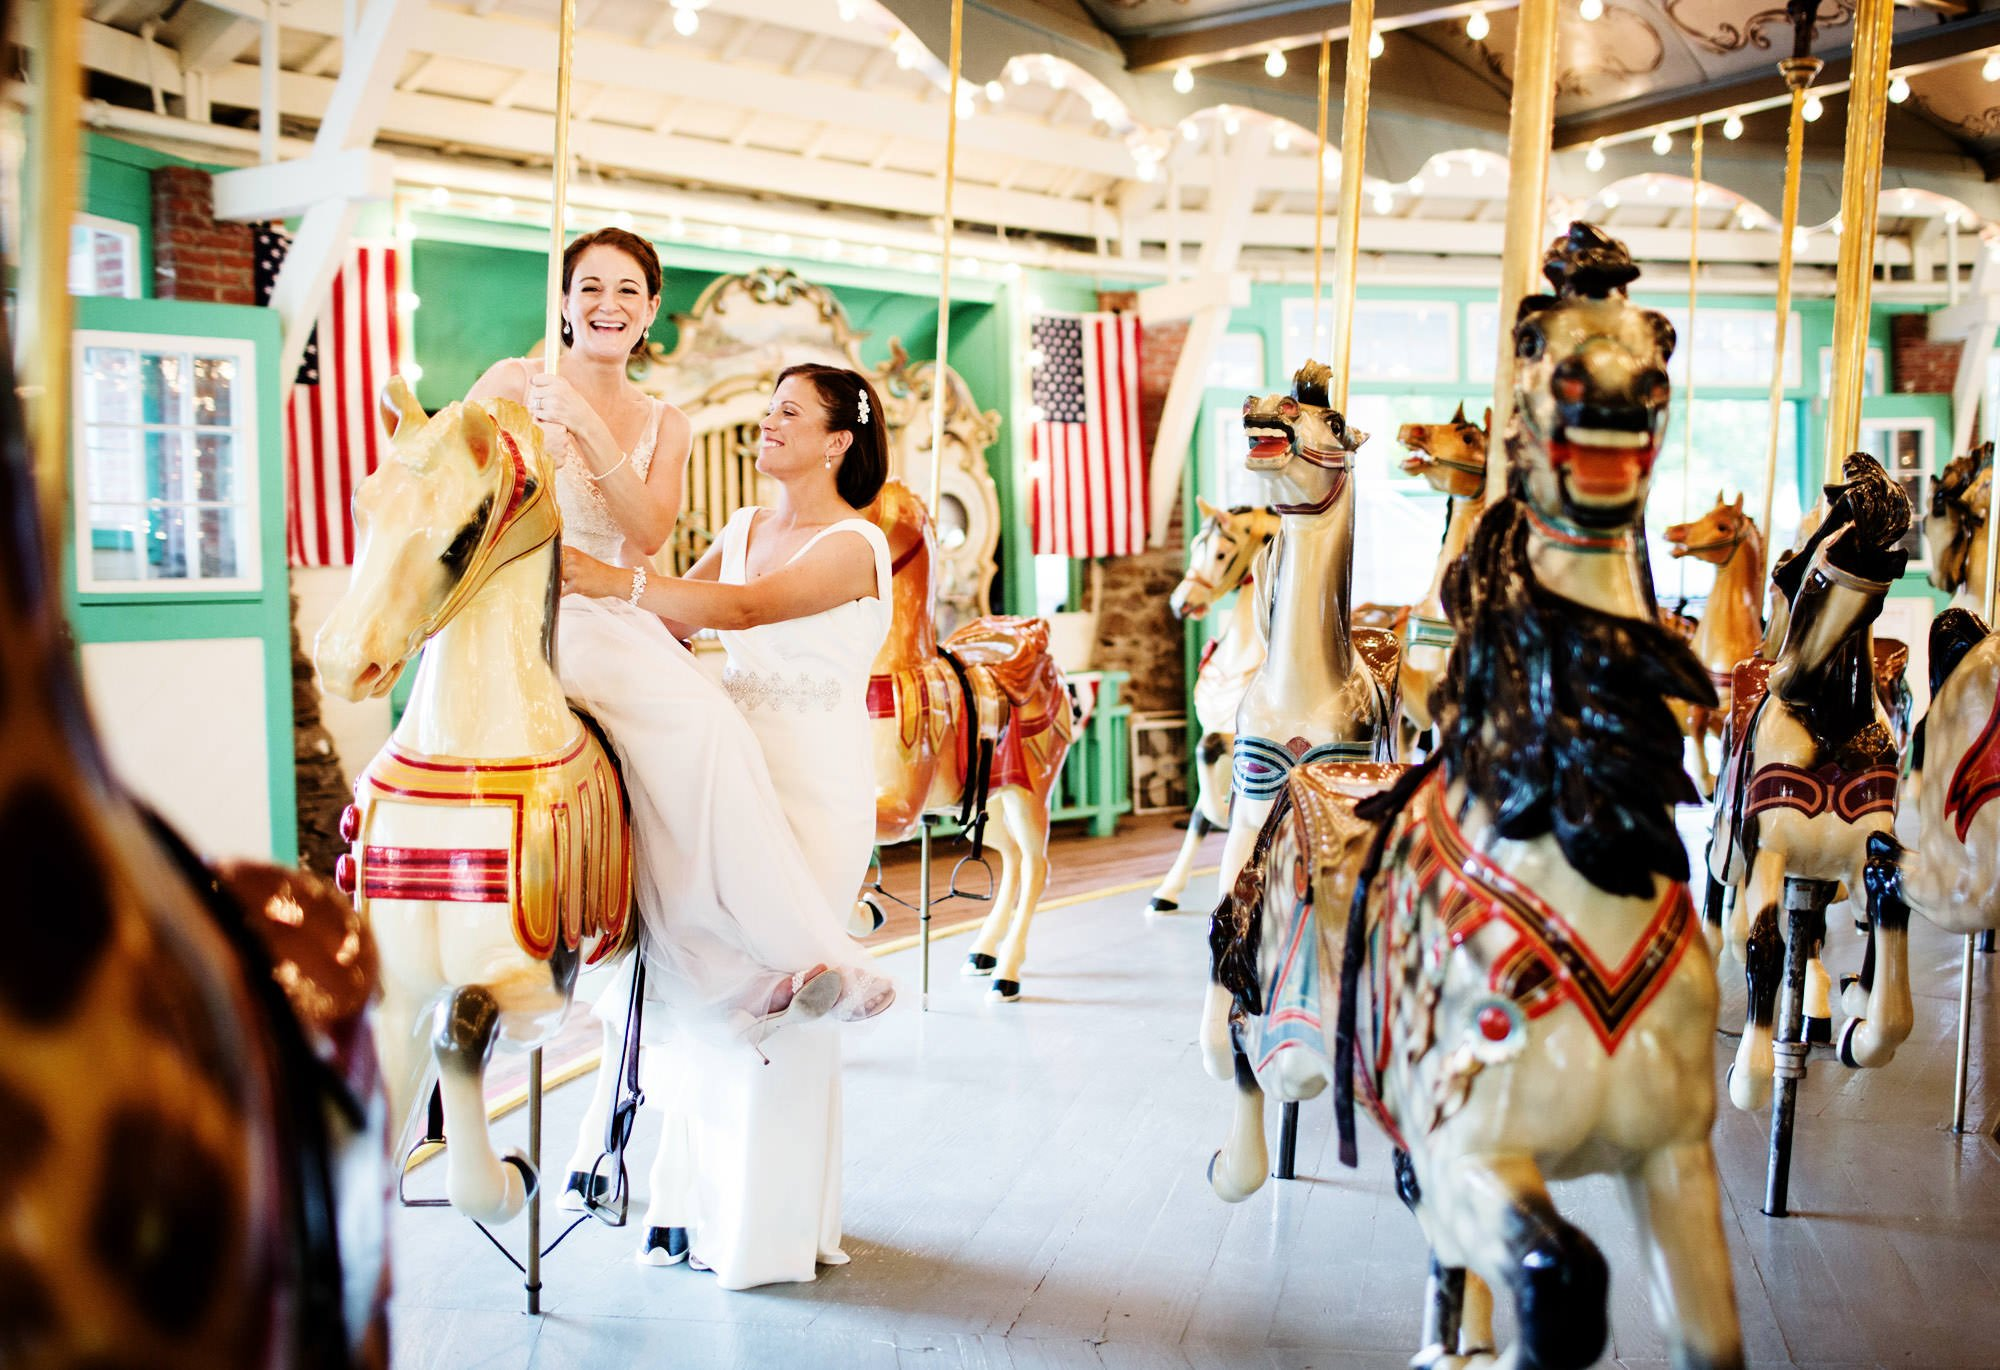 Glen Echo Park Wedding in Washington, DC  I  The two brides ride the Dentzel Carousel after their wedding ceremony.